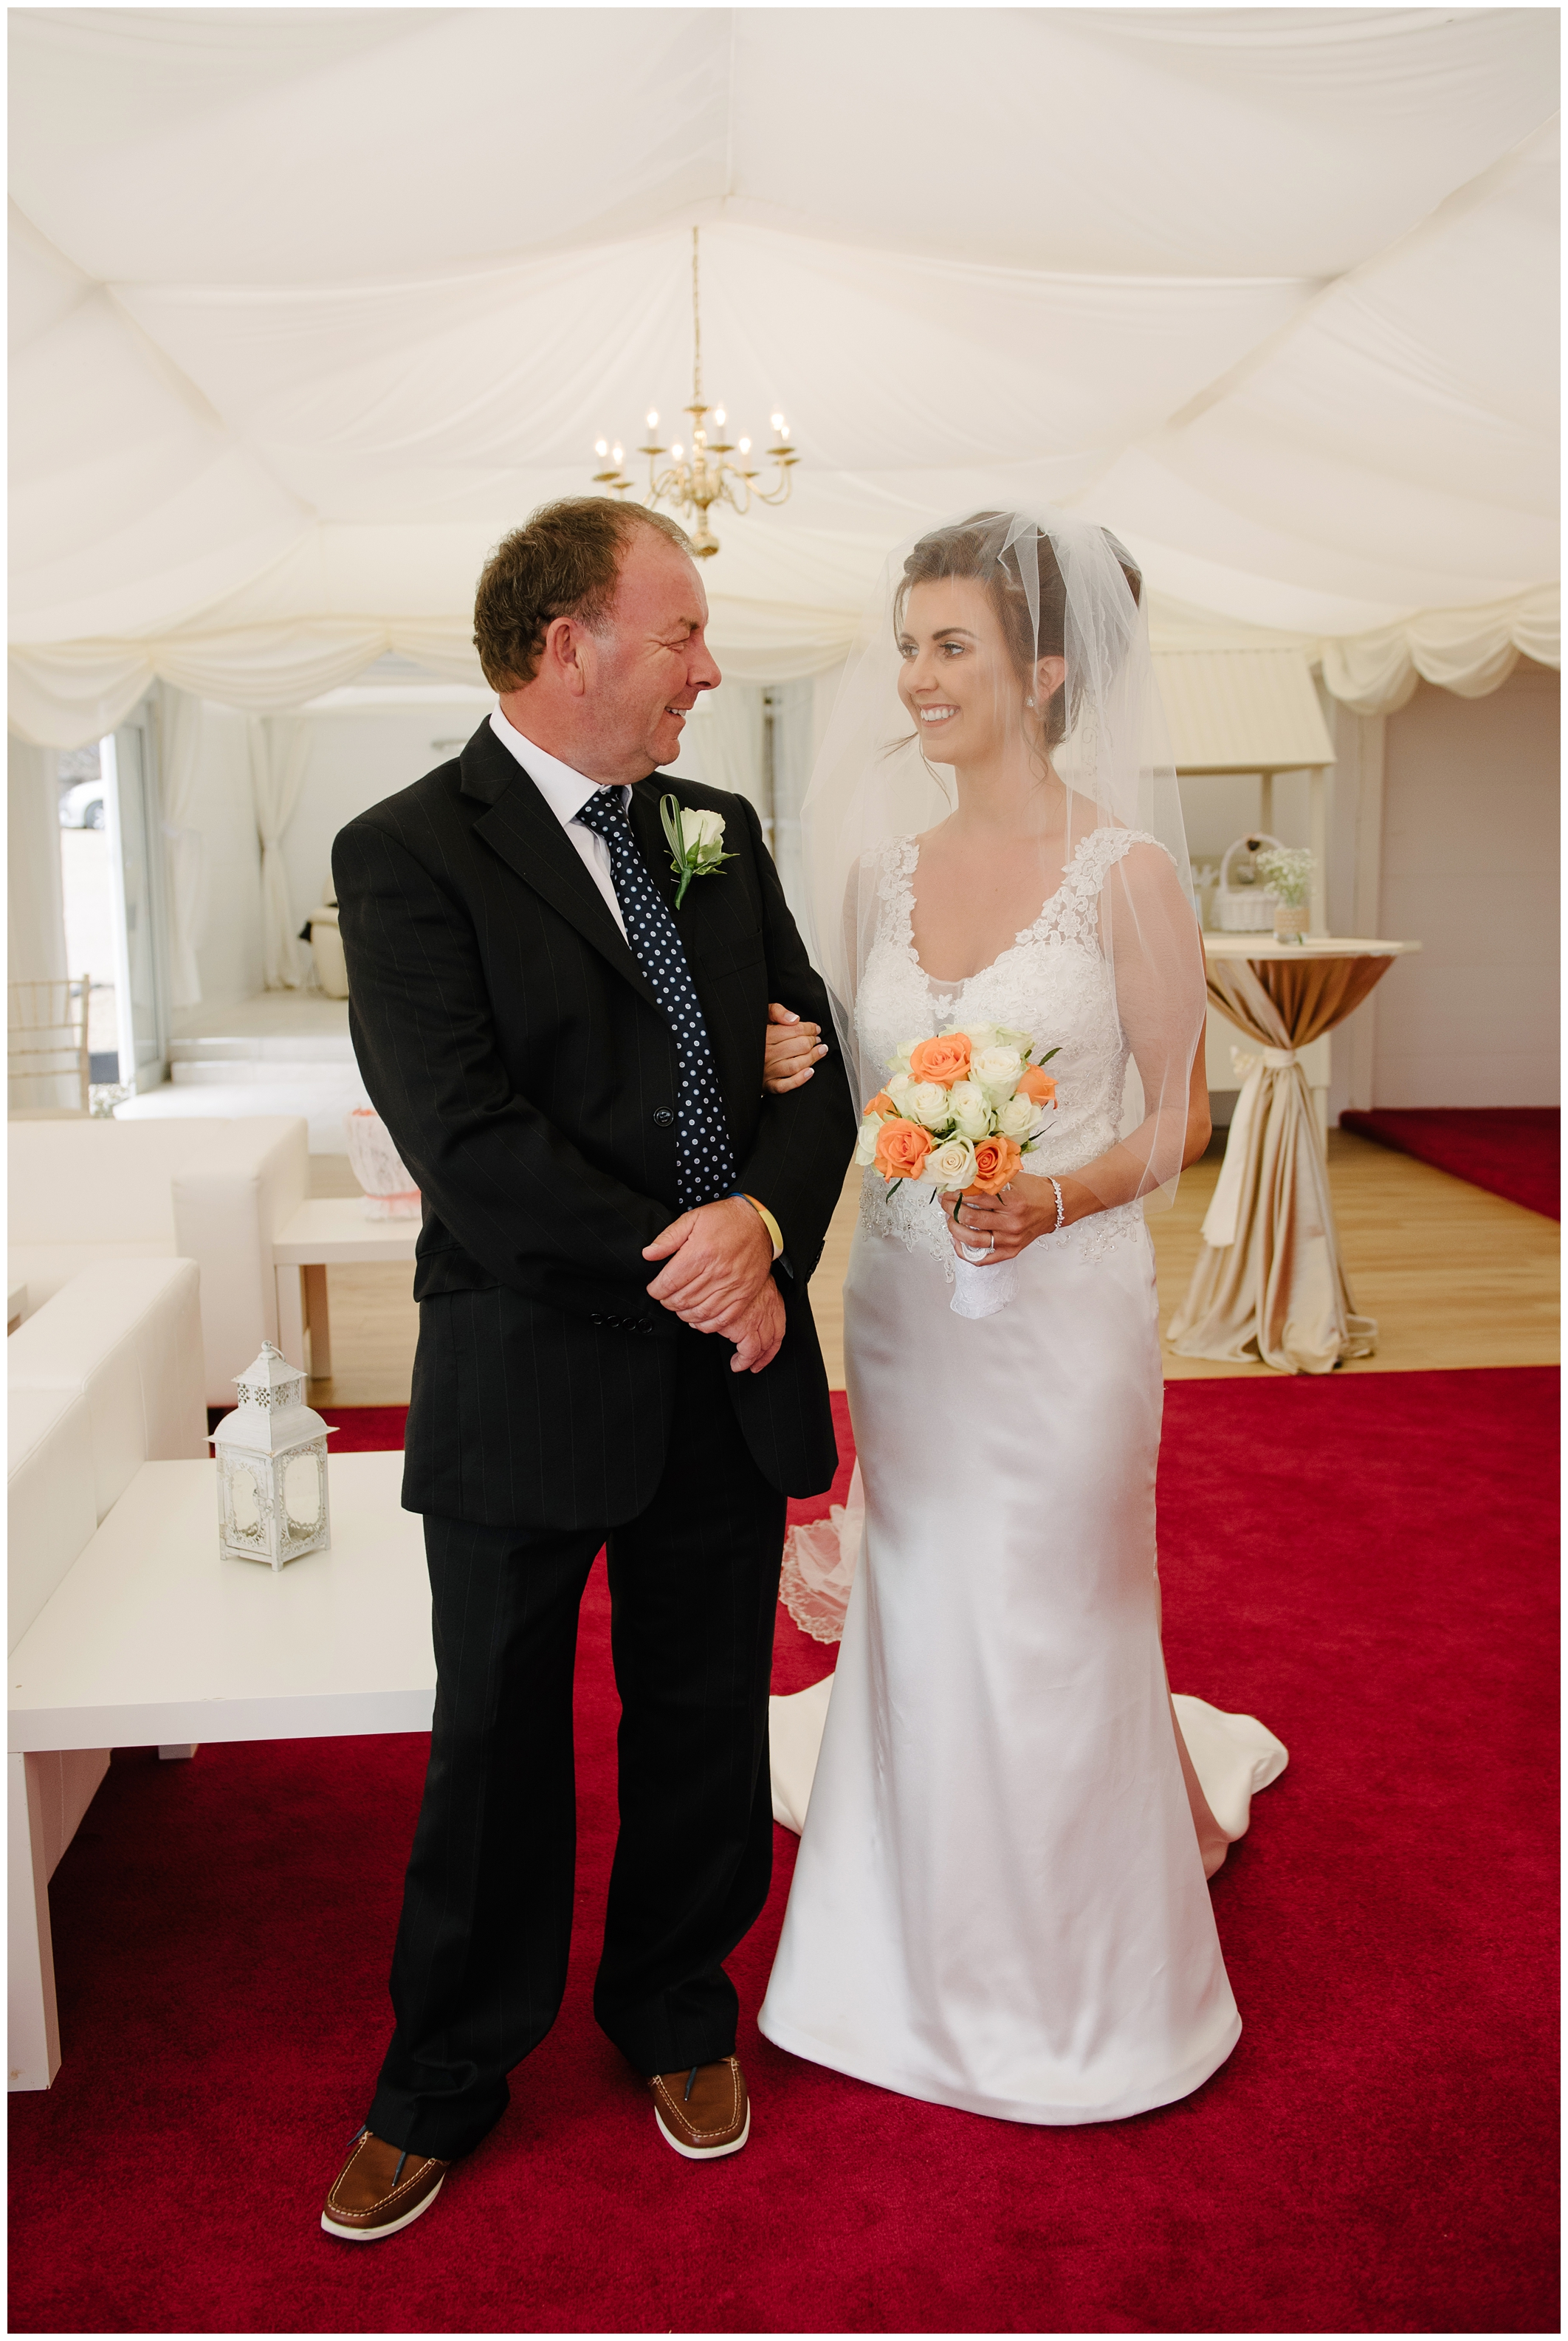 Lynsey_Andy_Rossharbour_Fermanagh_wedding_jude_browne_photography_0033.jpg